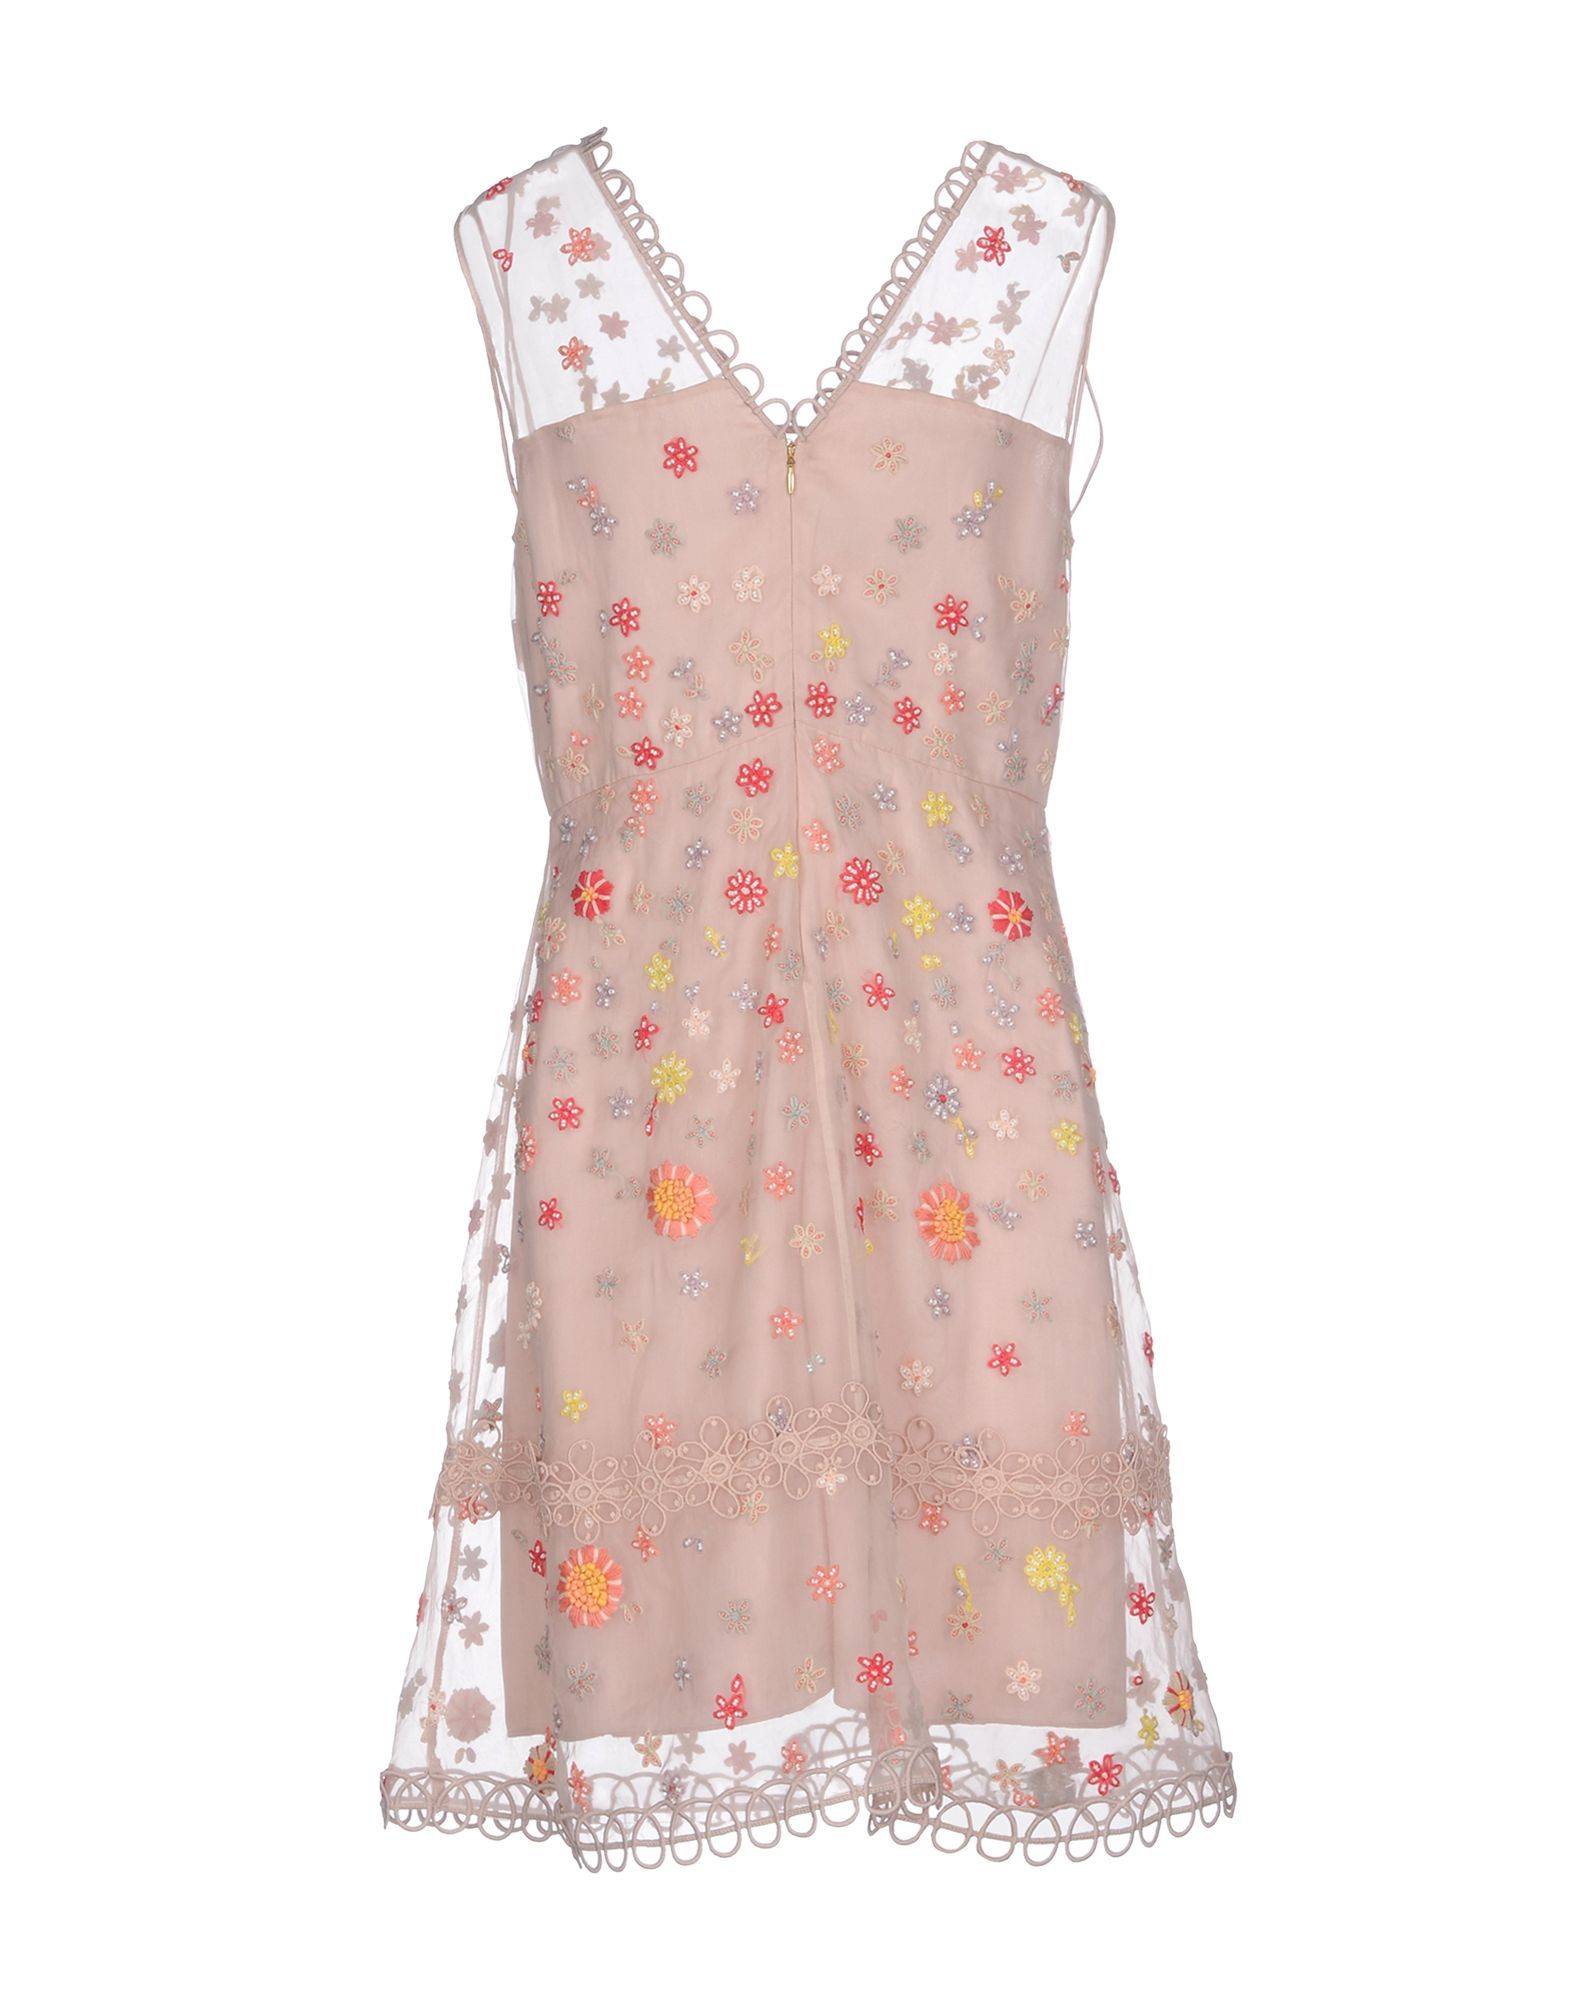 Elie Tahari Pink Silk And Lace Dress